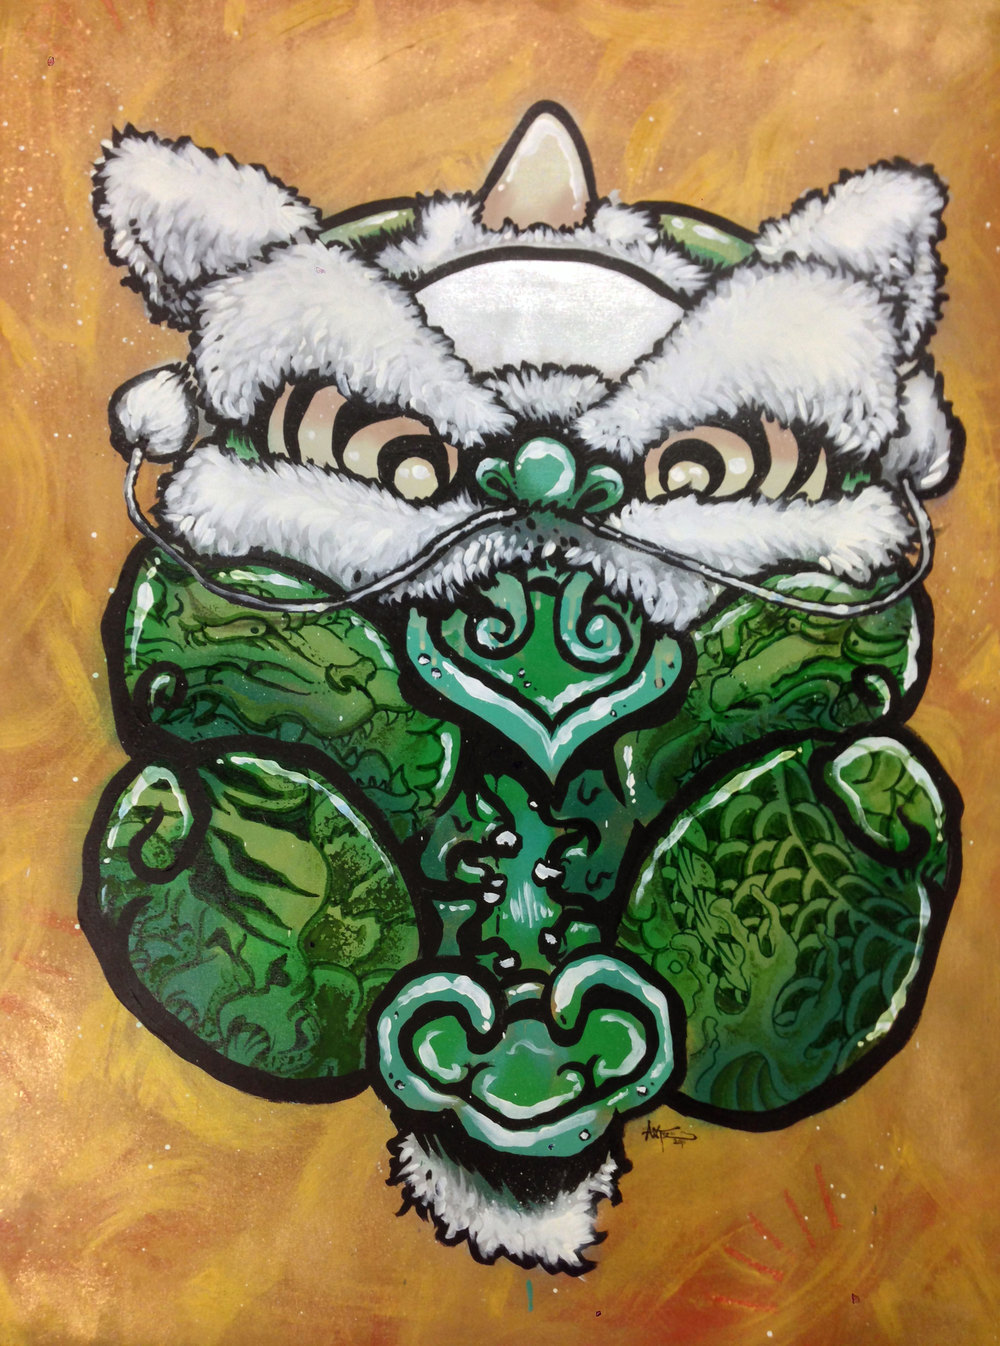 ANTZ  Lui Lion  2011 Mixed medium on canvas 43 x 30""